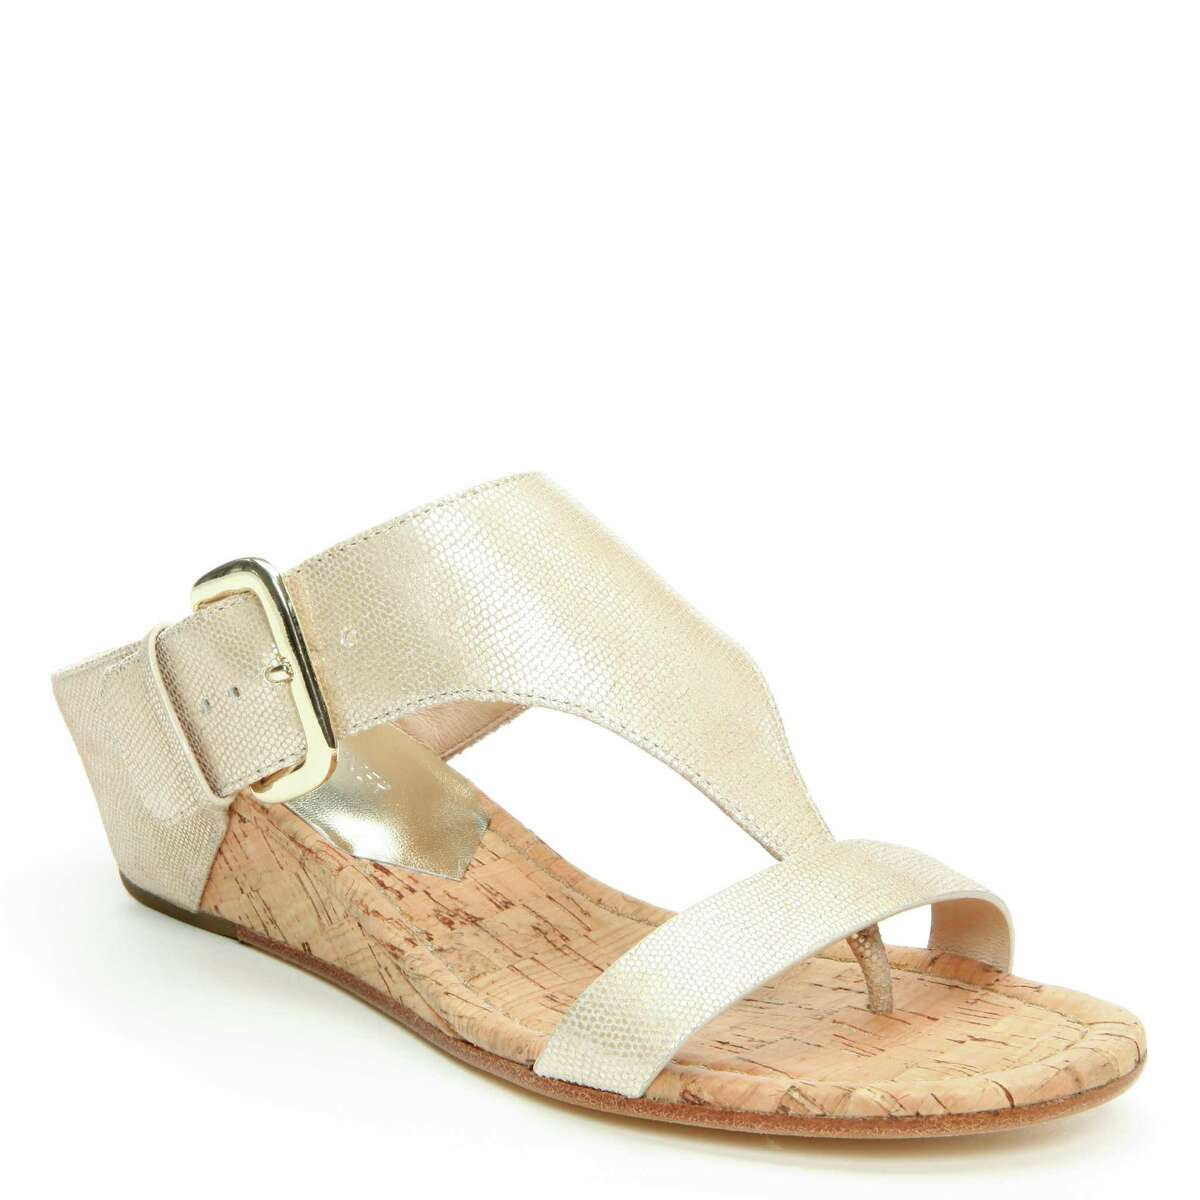 Because of the micro-fiber stretch he uses in the construction of shoes, designer Donald J. Pliner is known for shows that are comfort first, fashion second. Here, a metallic wedge sandal, $198, from his spring 2015 collection, Dillard's North Star Mall.